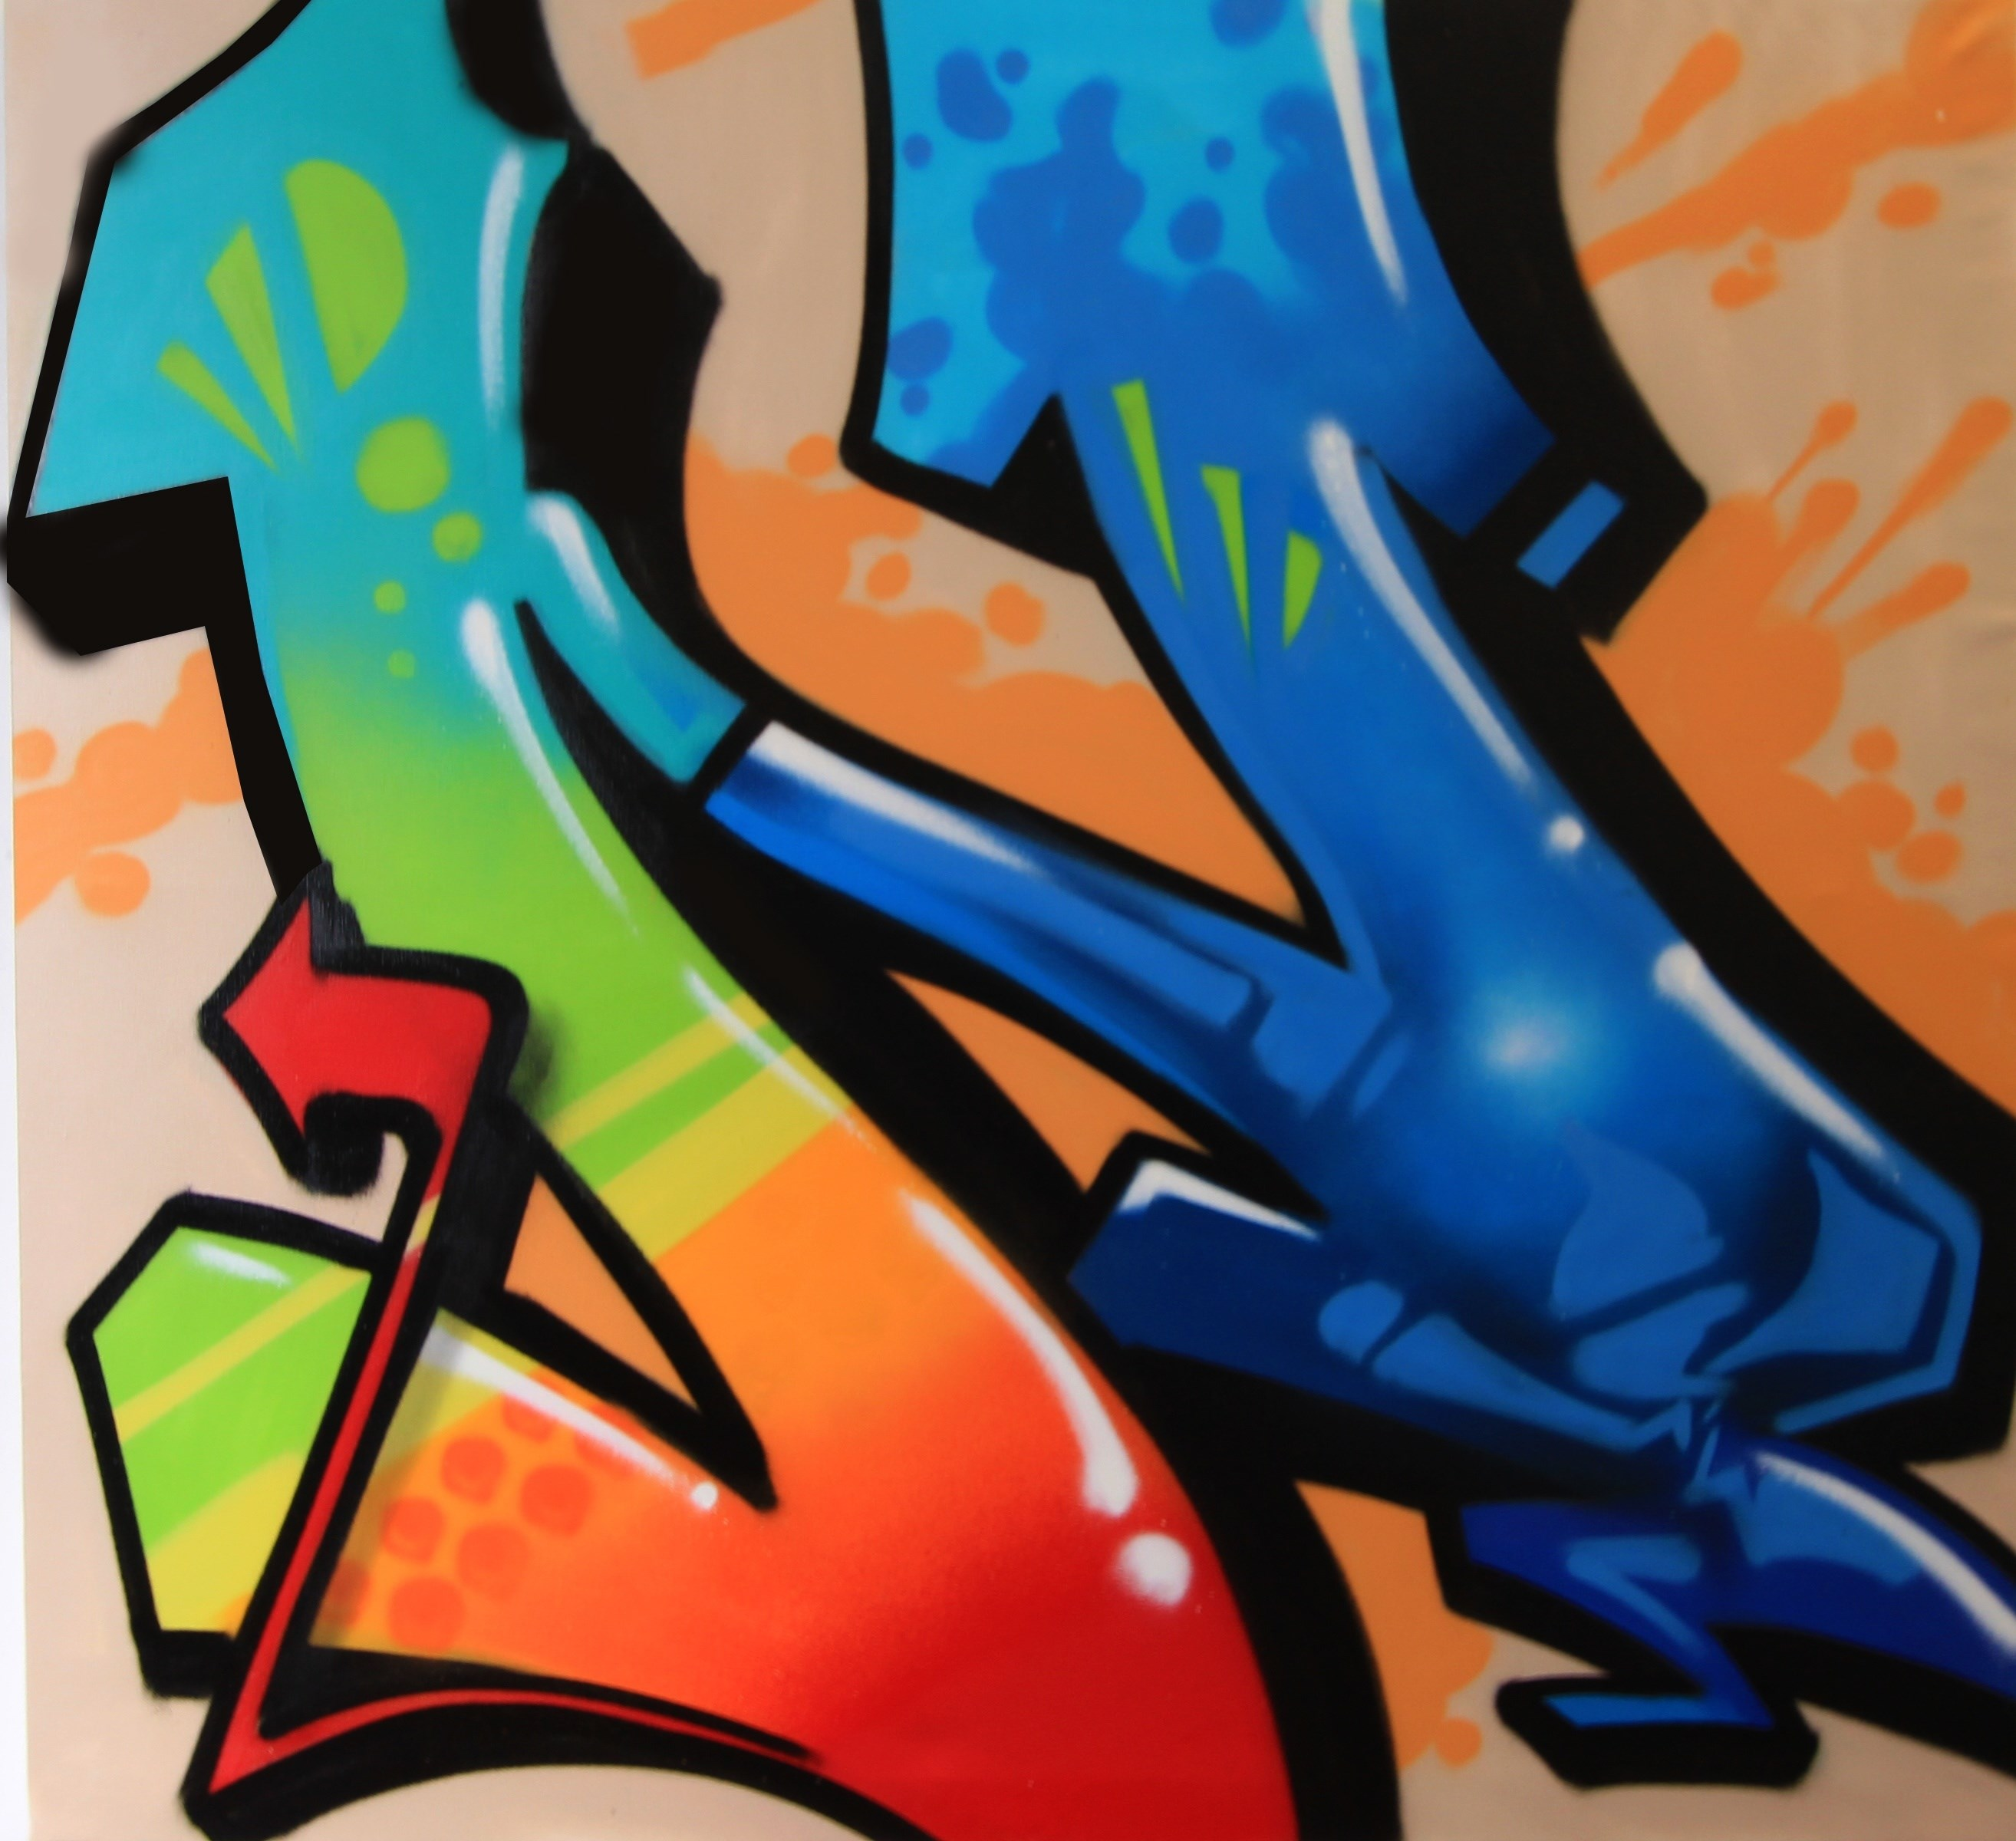 N stands for Nomen, Pintura Graffiti Abstrato original por Nomen Nuno